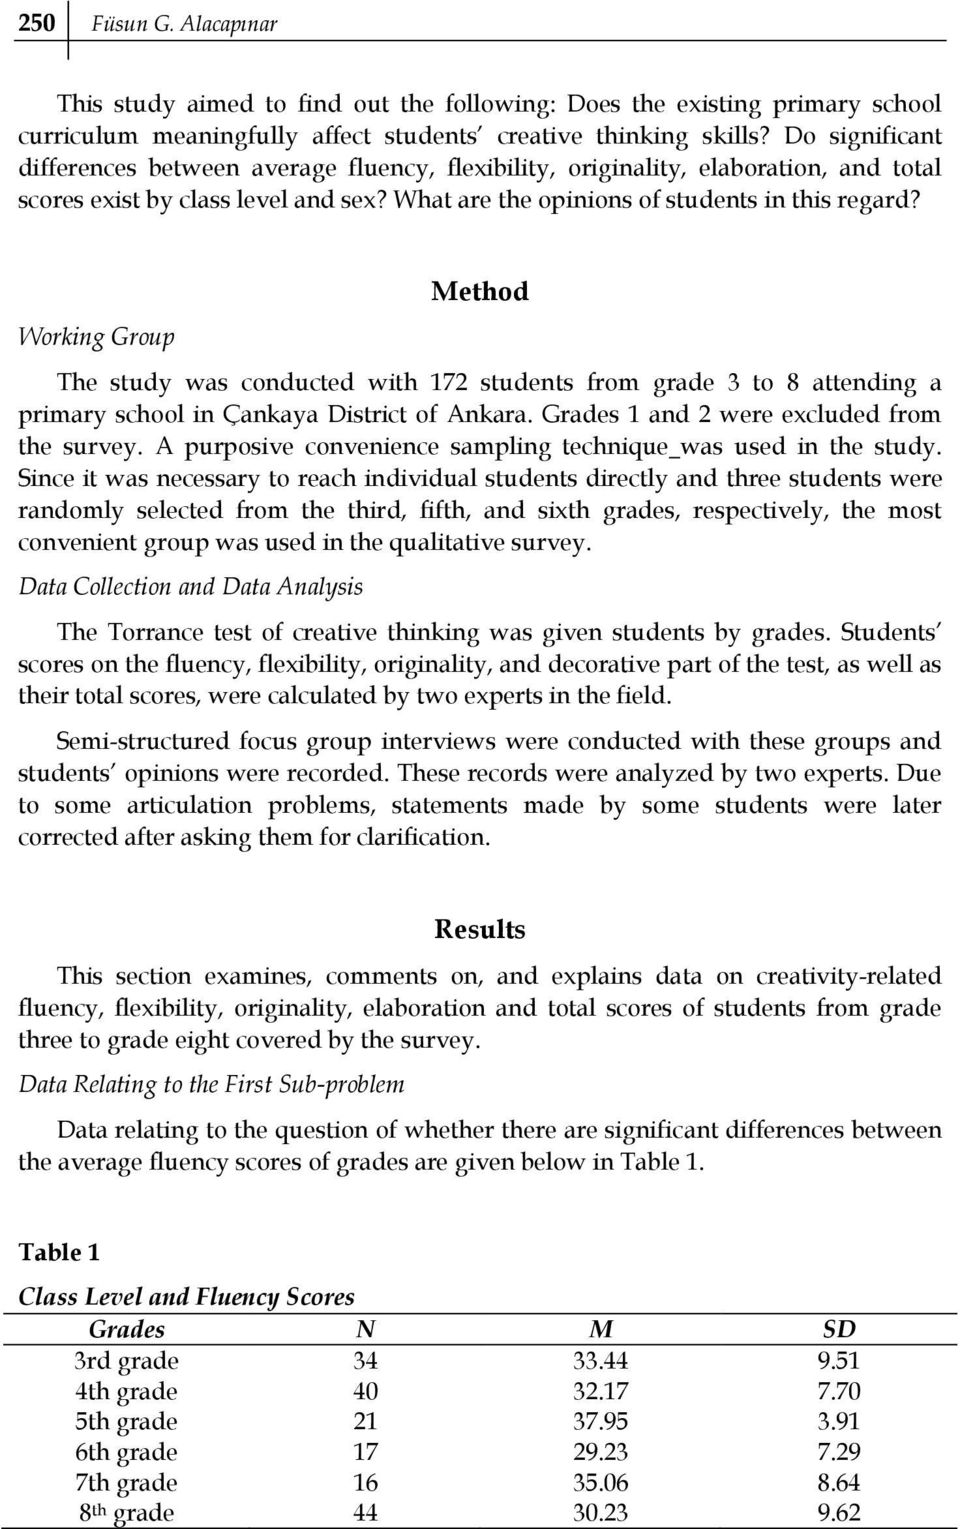 Working Group Method The study was conducted with 172 students from grade 3 to 8 attending a primary school in Çankaya District of Ankara. Grades 1 and 2 were excluded from the survey.